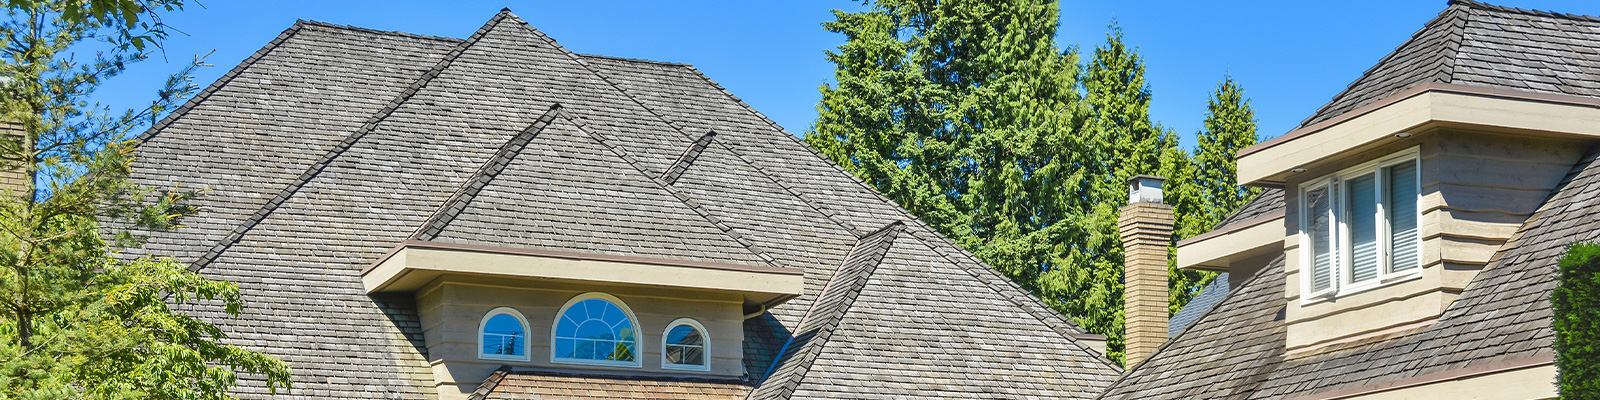 Best Roofing Buying Guide 2021